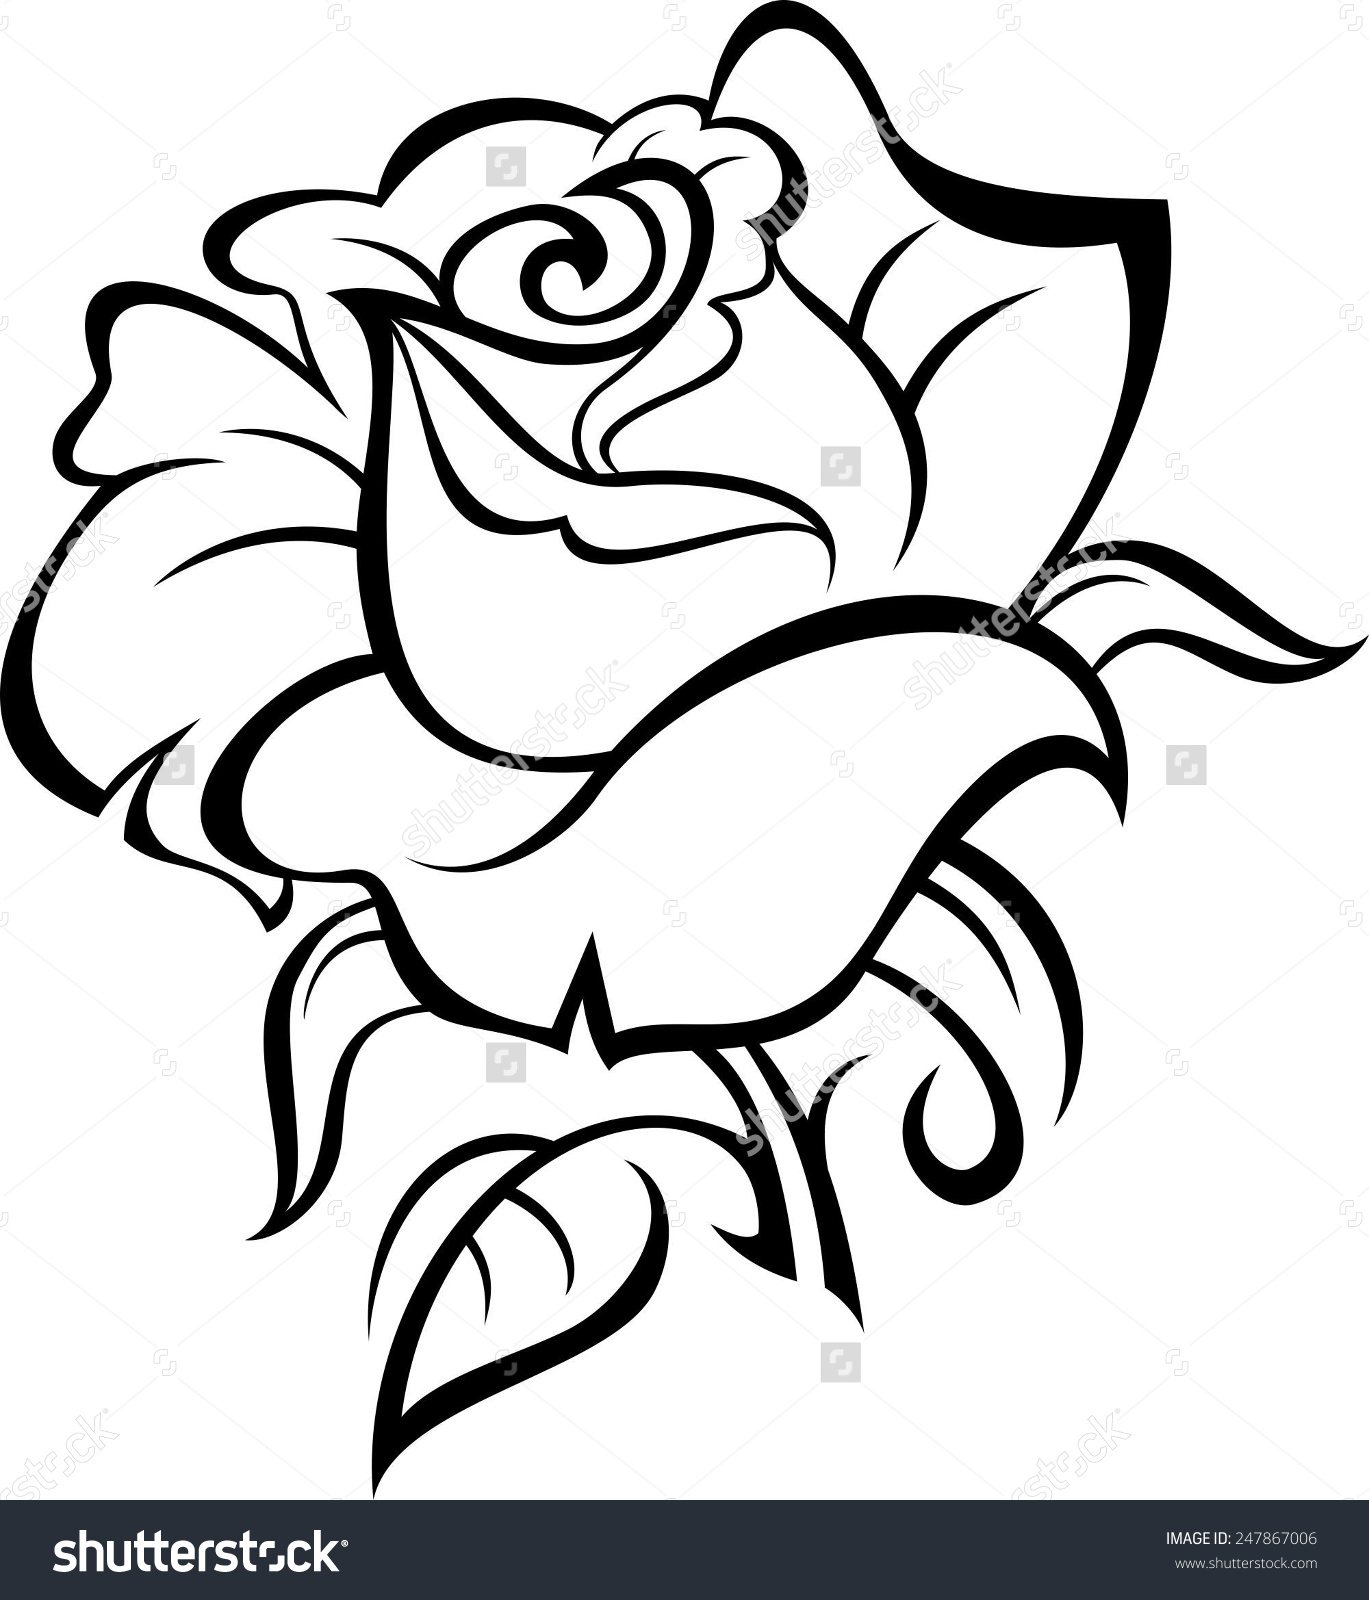 Simple Rose Tattoo Outline: Tattoo Rose Drawing At GetDrawings.com